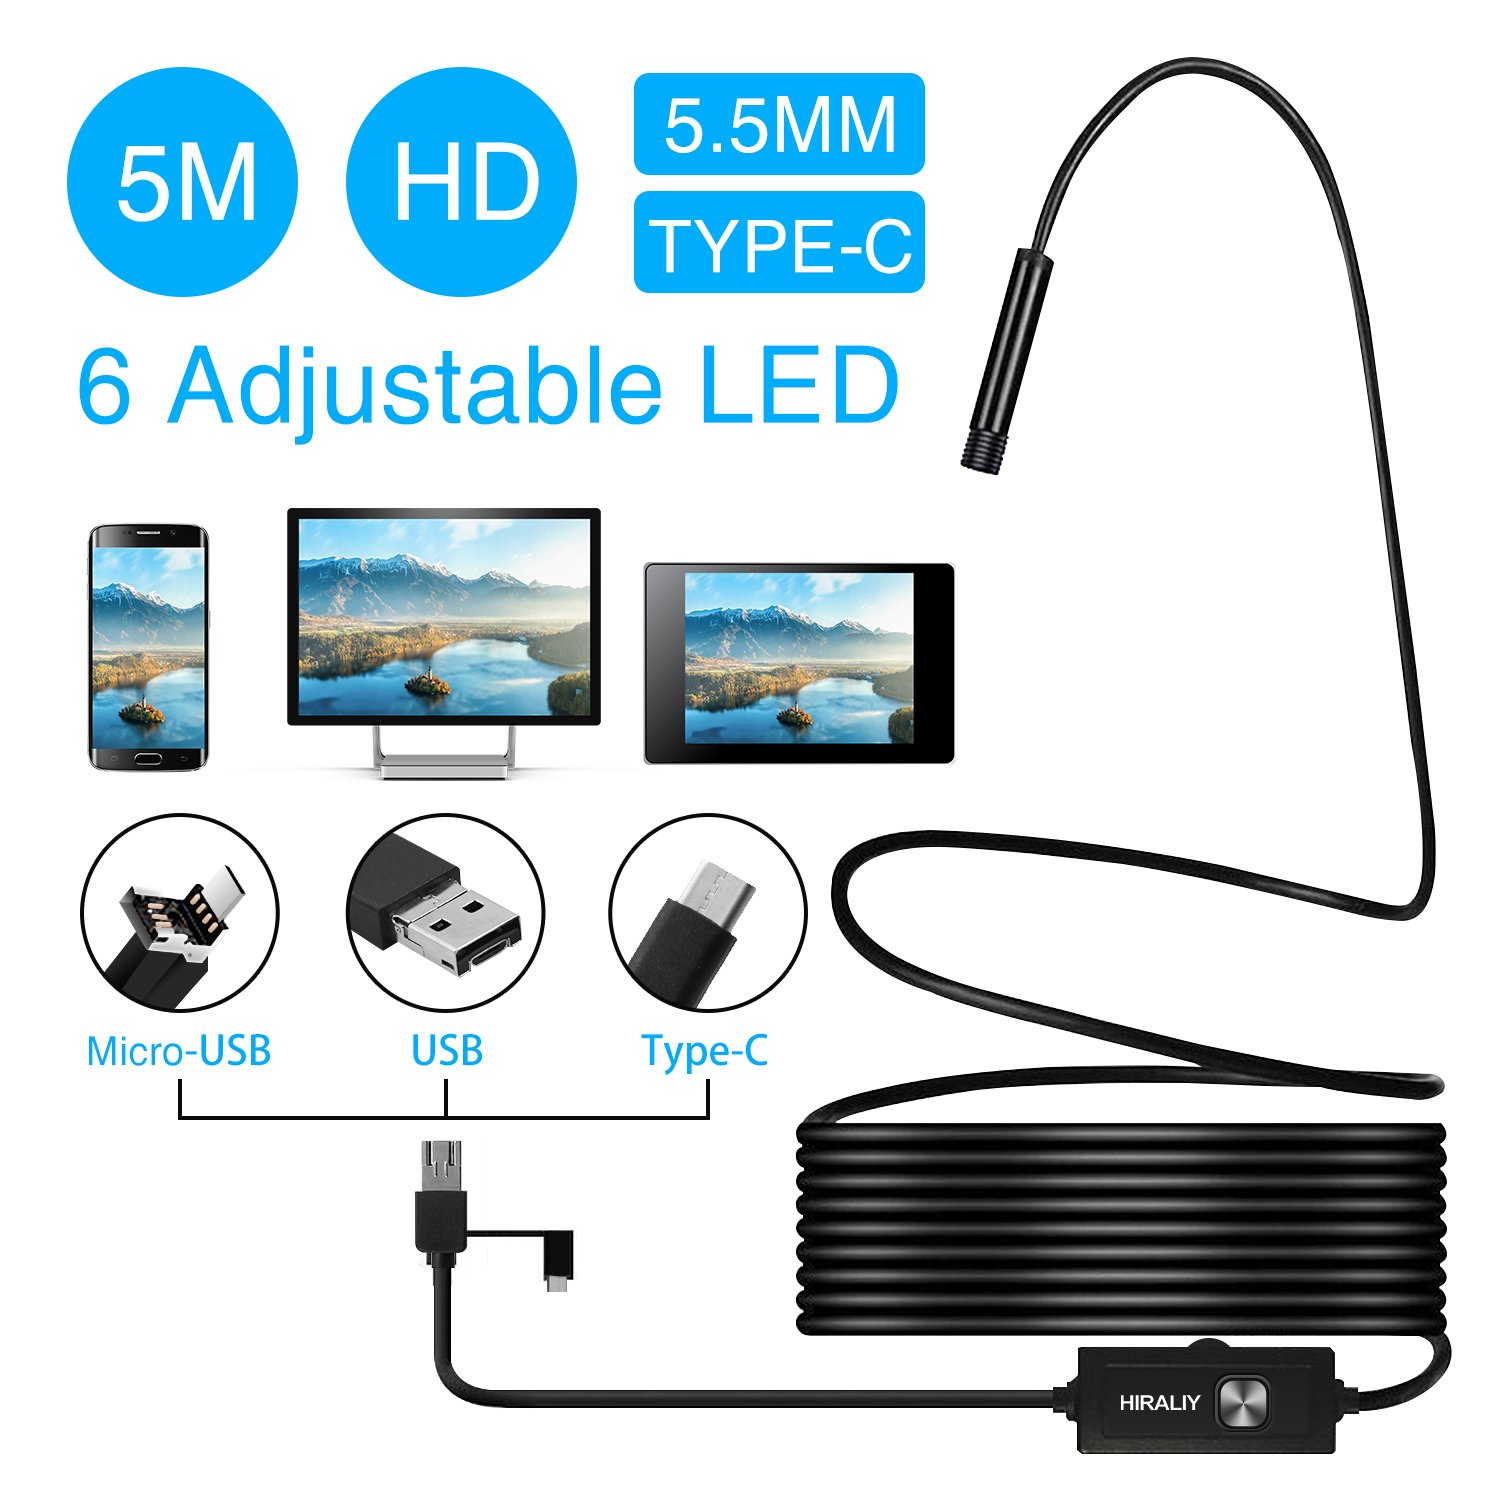 3 in 1 USB Endoscope Camera HIRALIY Semi-rigid Type C Borescope Inspection Camera 2.0 Megapixels HD Waterproof Snake Camera with 6 Adjustable Led Light for Android Smartphone, Tablet & PC-16.4ft